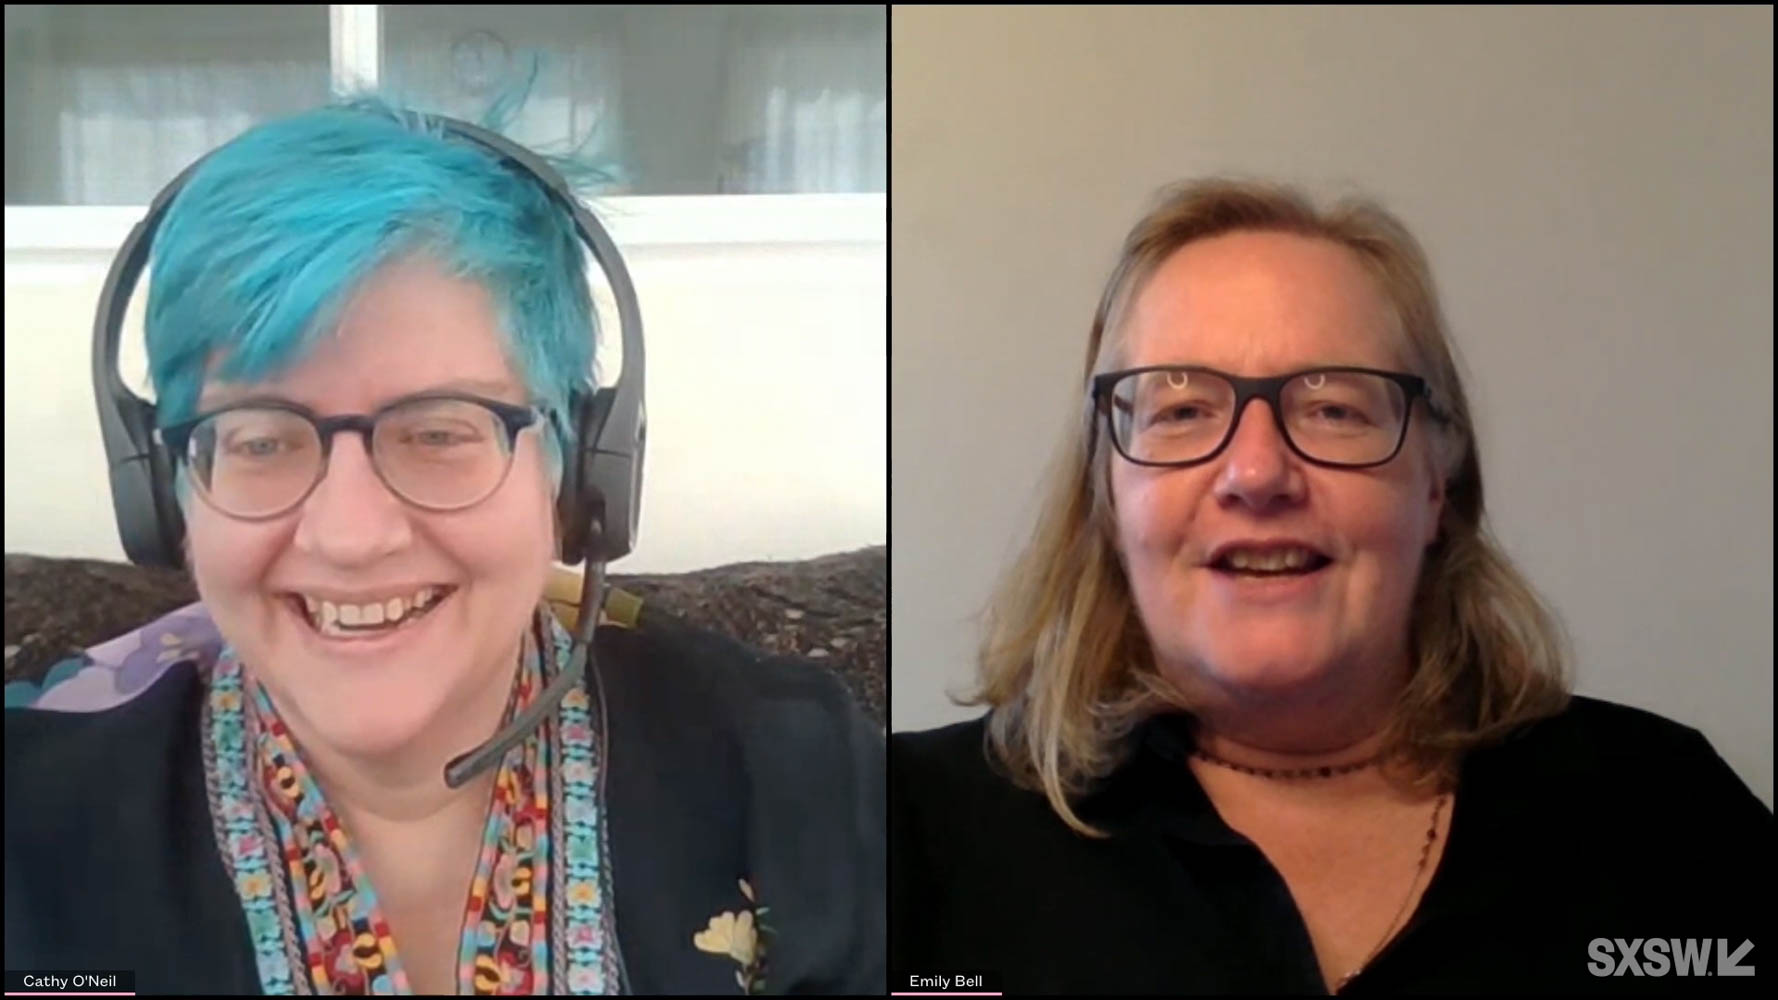 """From left: Cathy O'Neil and Emily Bell speak during their featured session """"AI Will Not Solve Your Nazi Problem"""" at SXSW Online on March 19, 2021."""